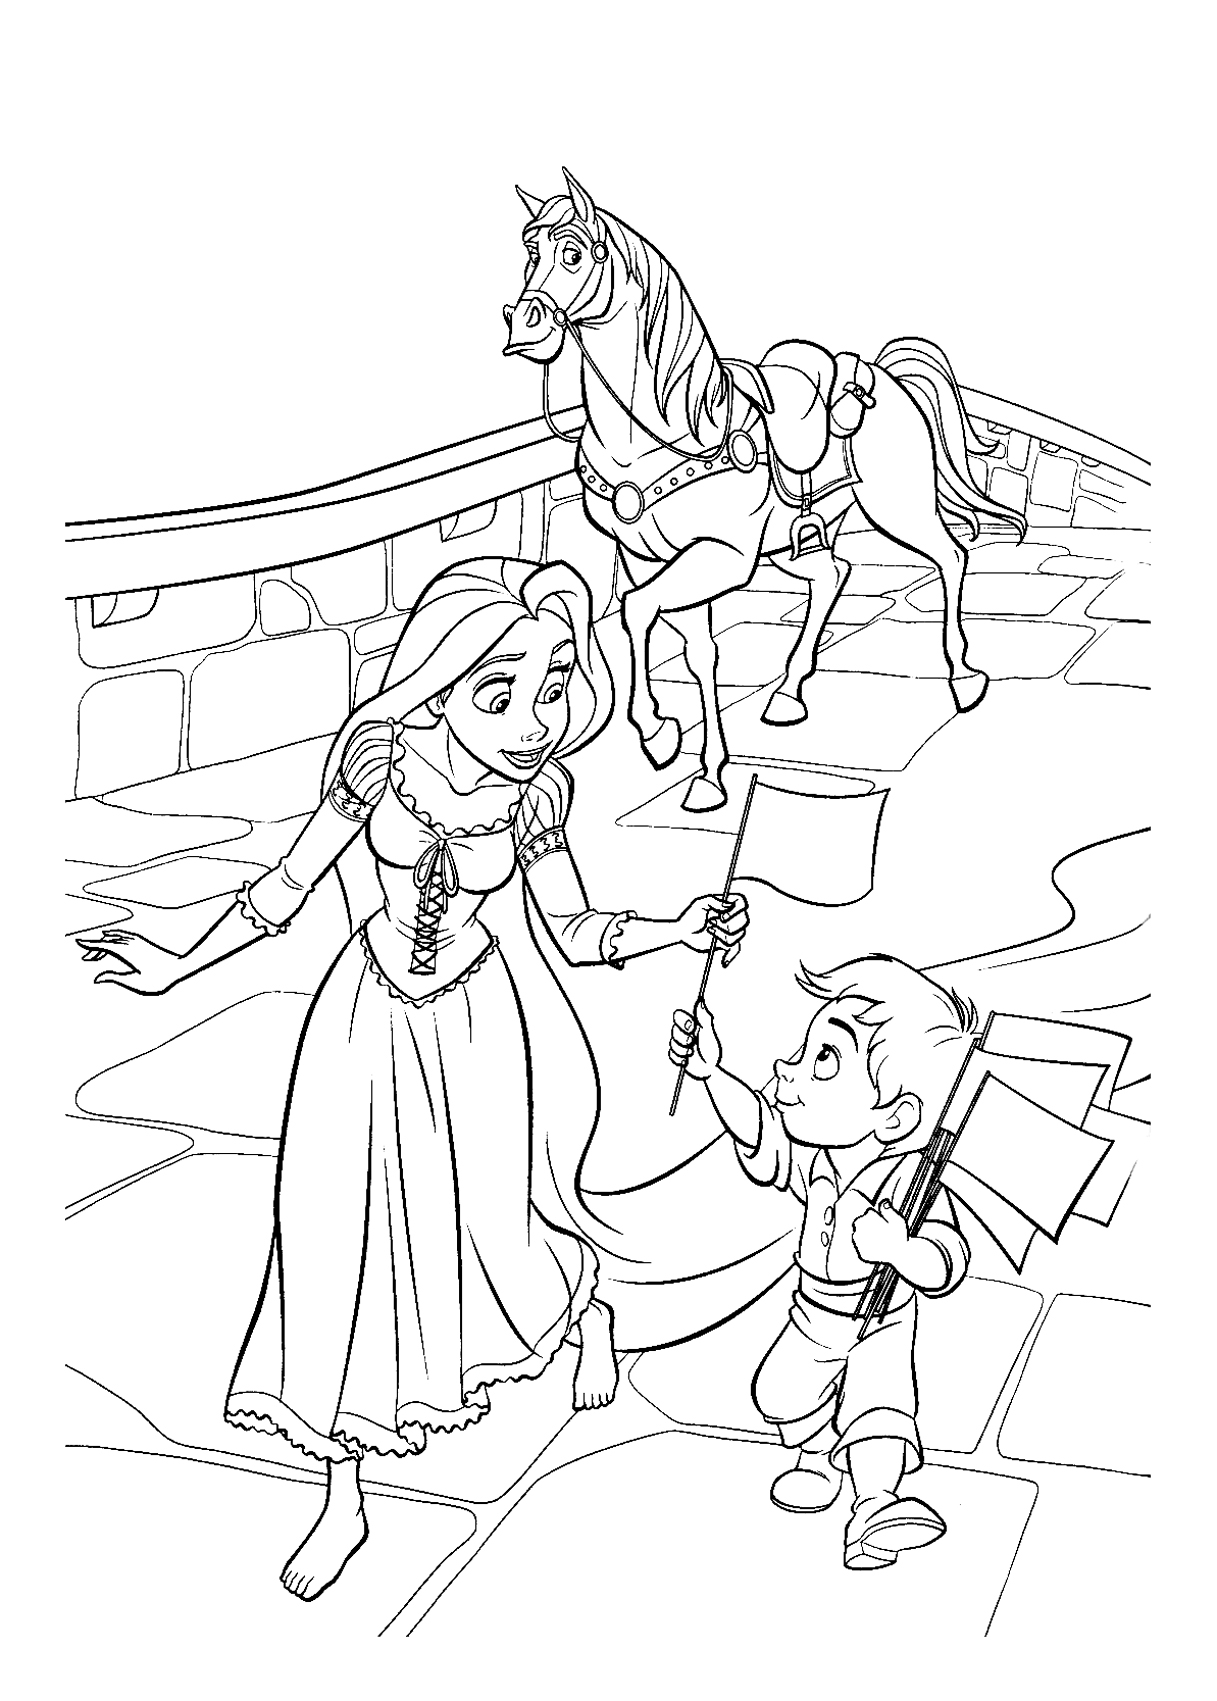 Rapunzel is playing with children Coloring Page